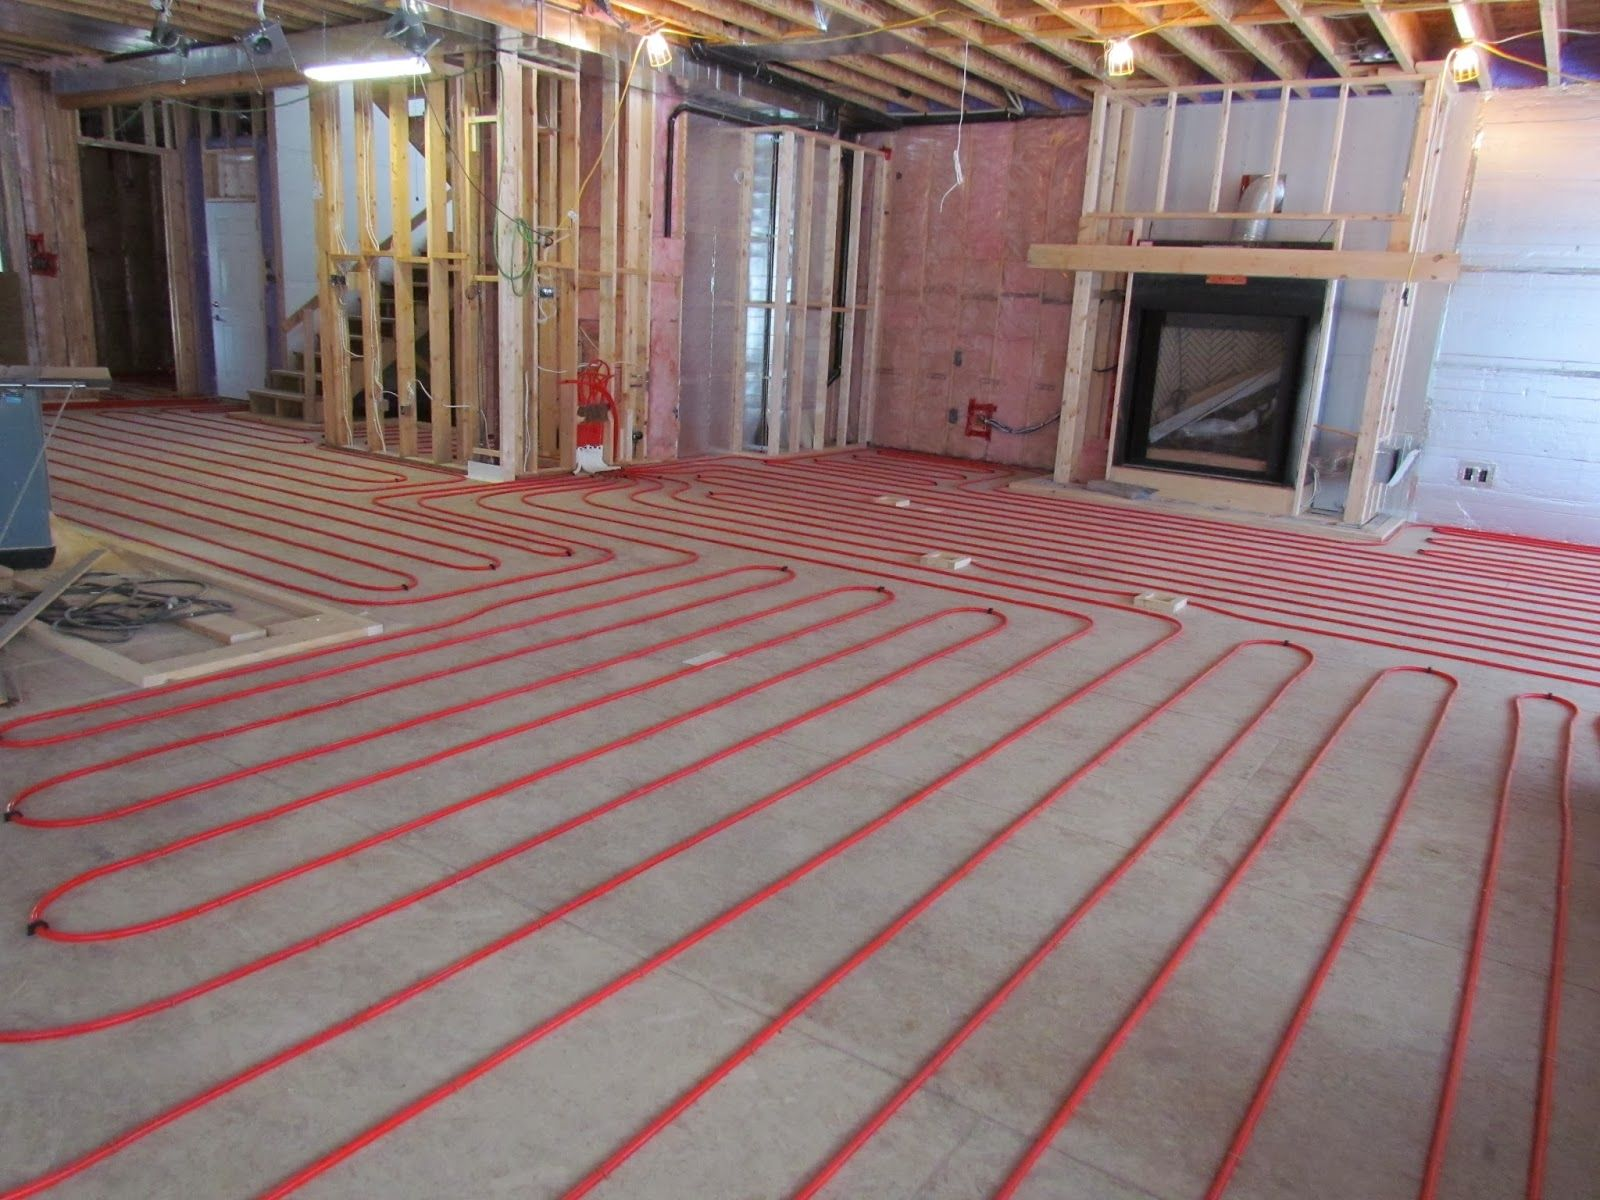 Radiant Floor Heating Finished Basement Floor Heating Systems Radiant Floor Heating Radiant Floor